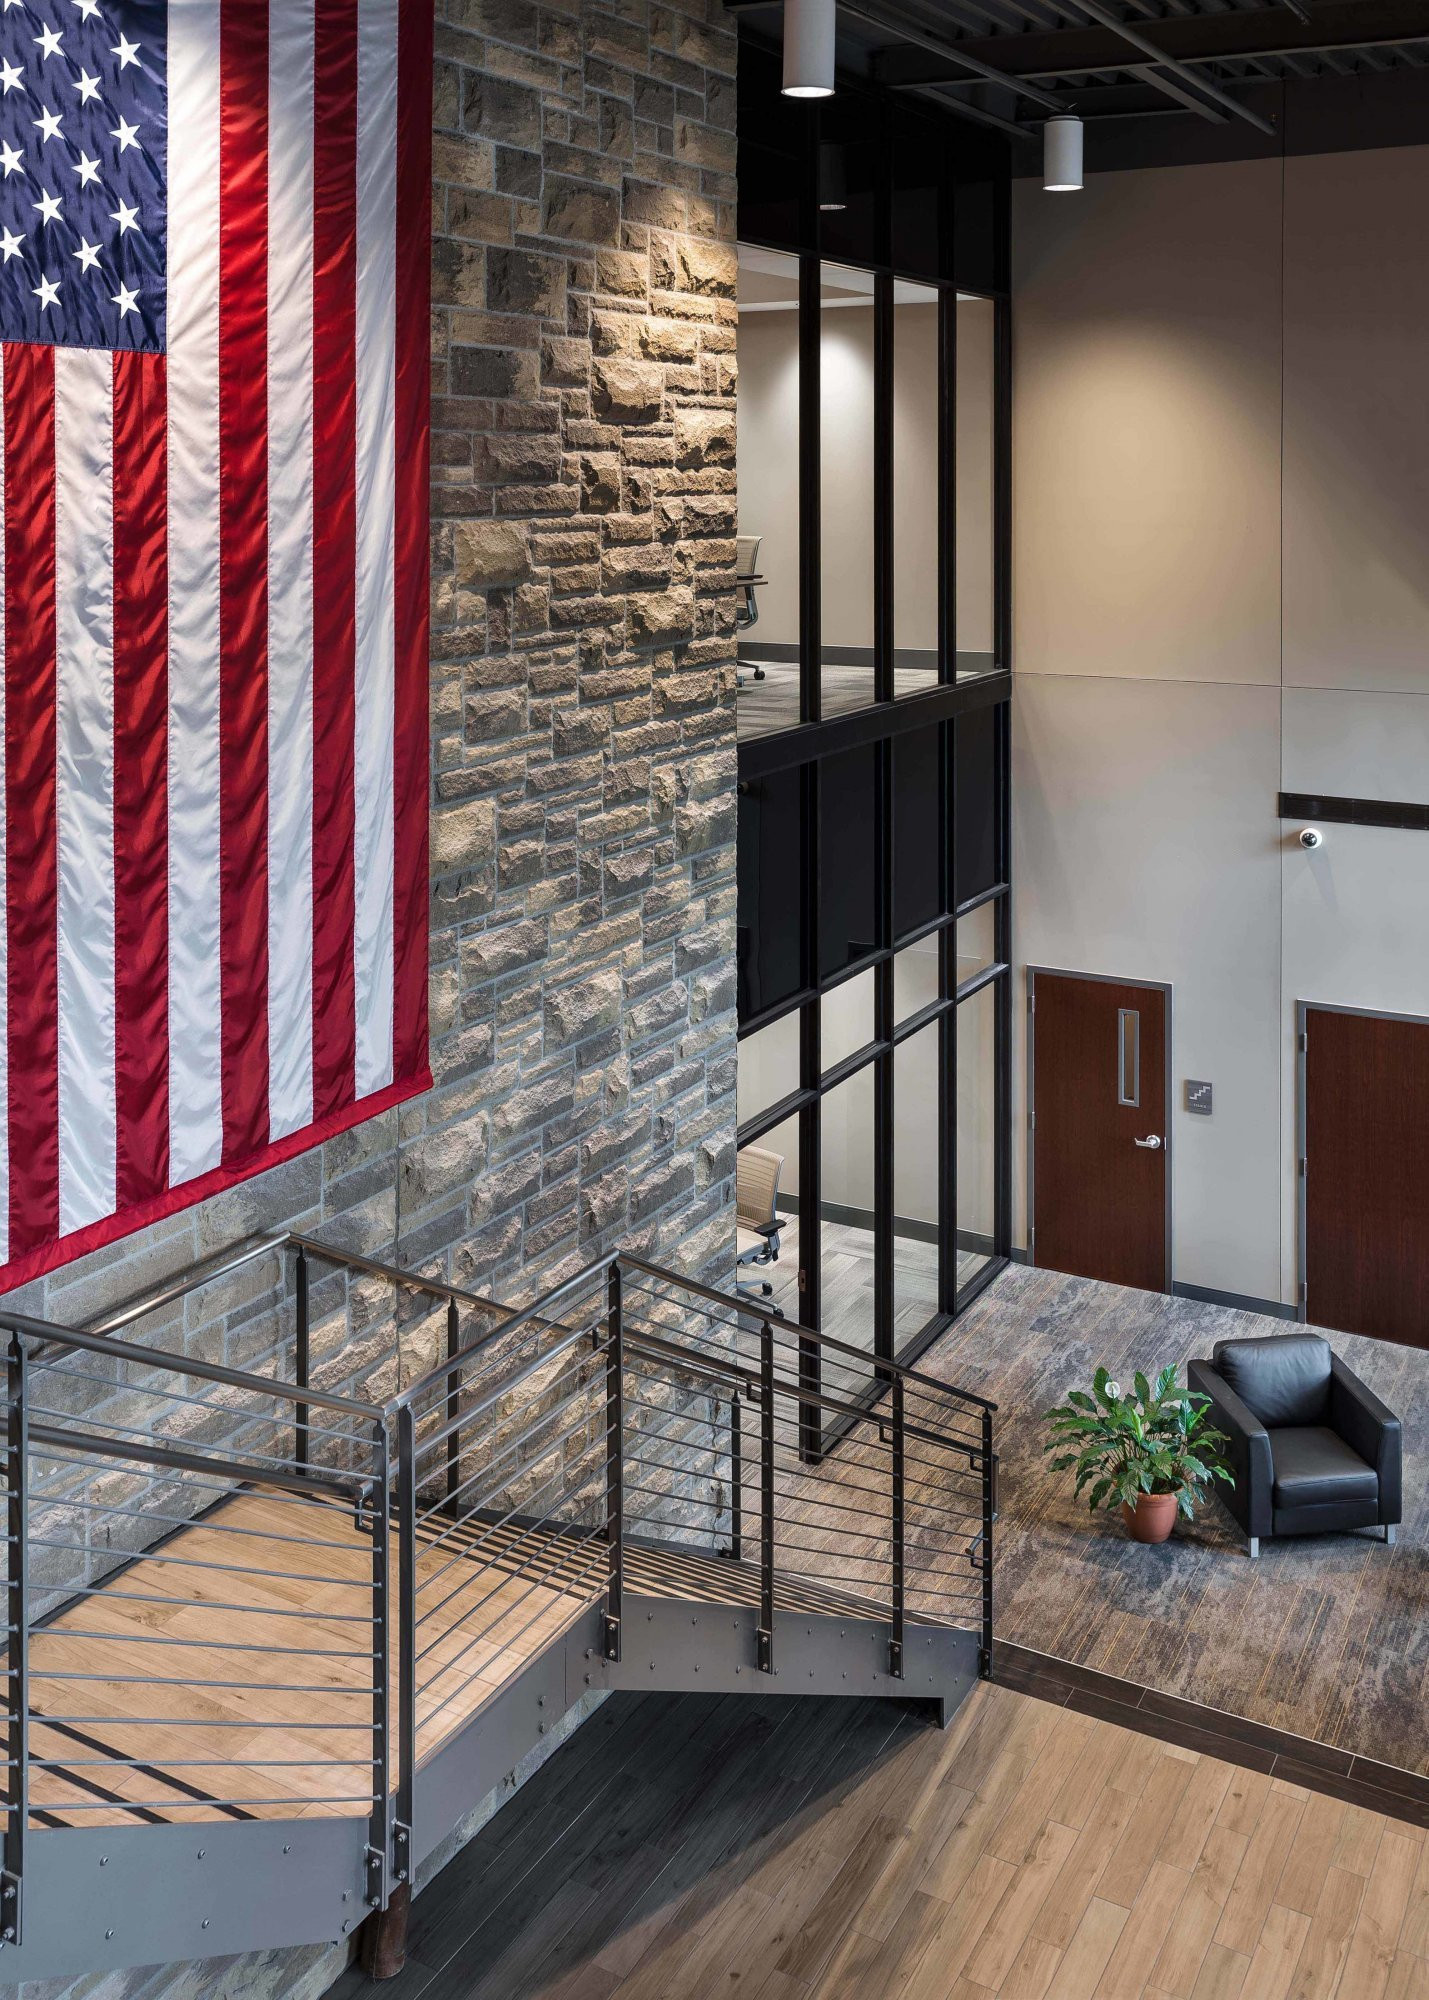 donan-engineering-new-headquarters-office-building-stairwell